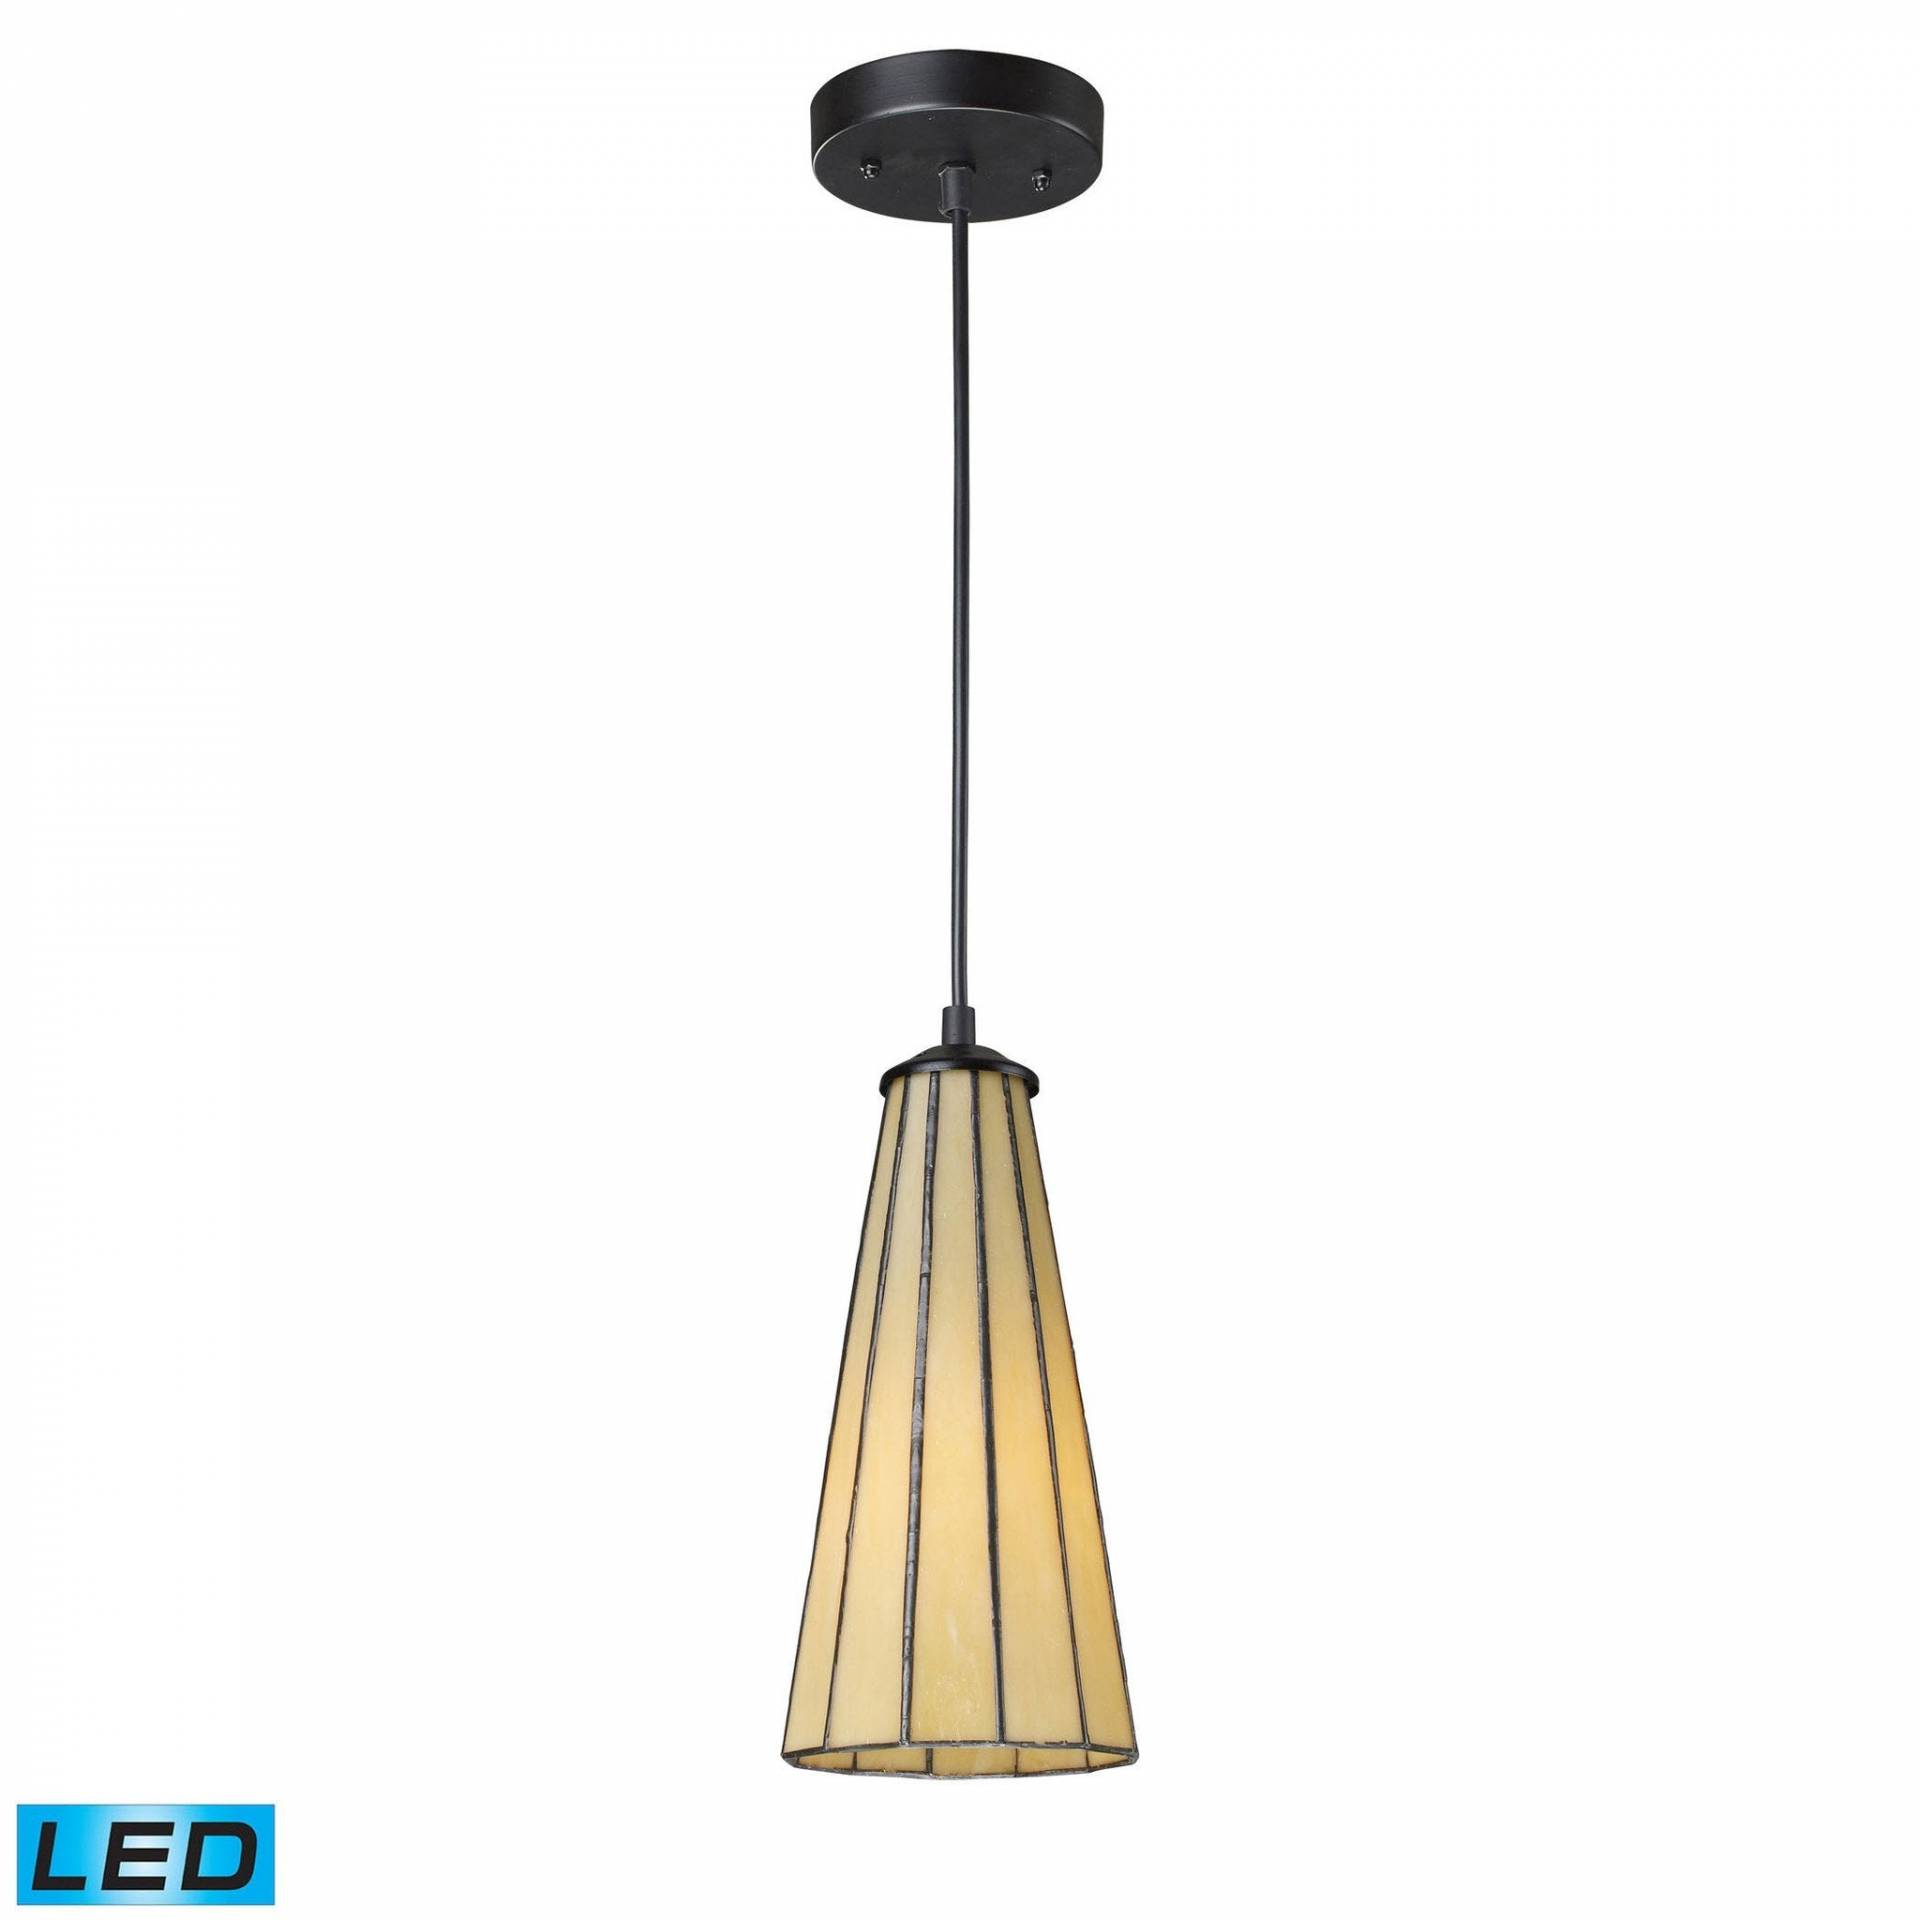 ELK Lighting 70000-1HB-LED Lumino Collection Hazy Beige,Matte Black Finish from ELK Lighting